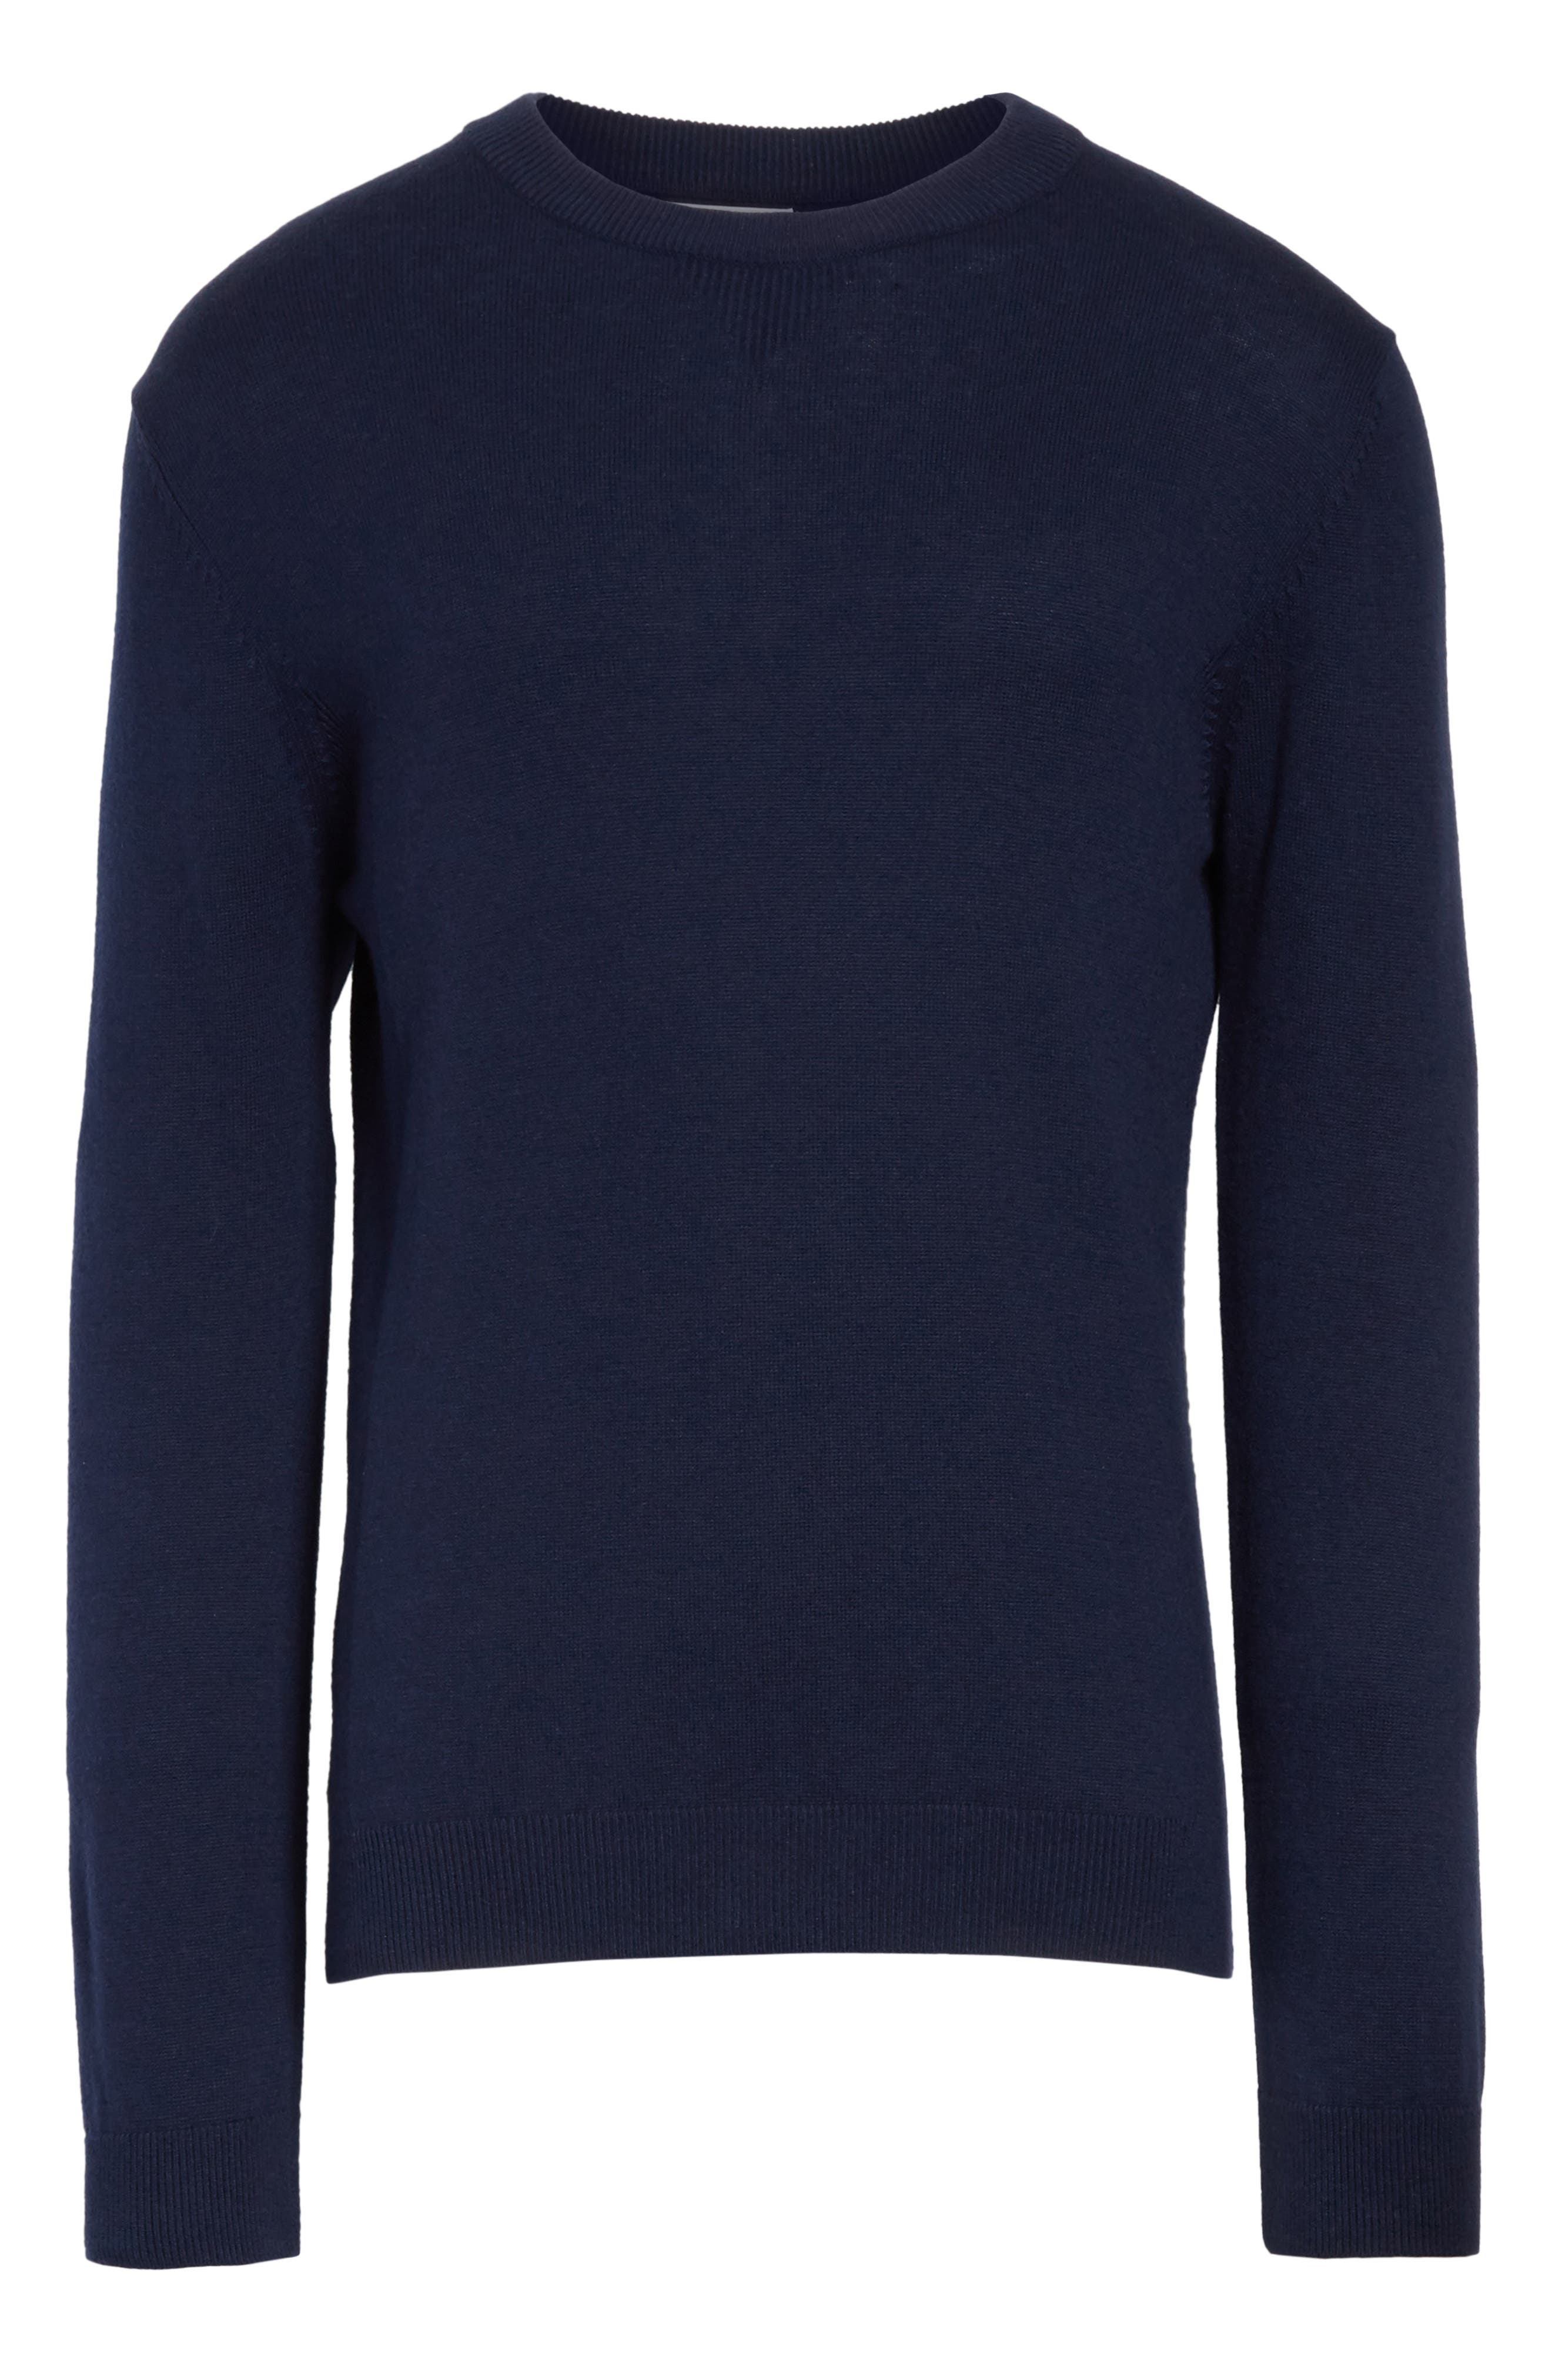 Everyday Classic Crewneck Sweater,                             Alternate thumbnail 6, color,                             Midnight